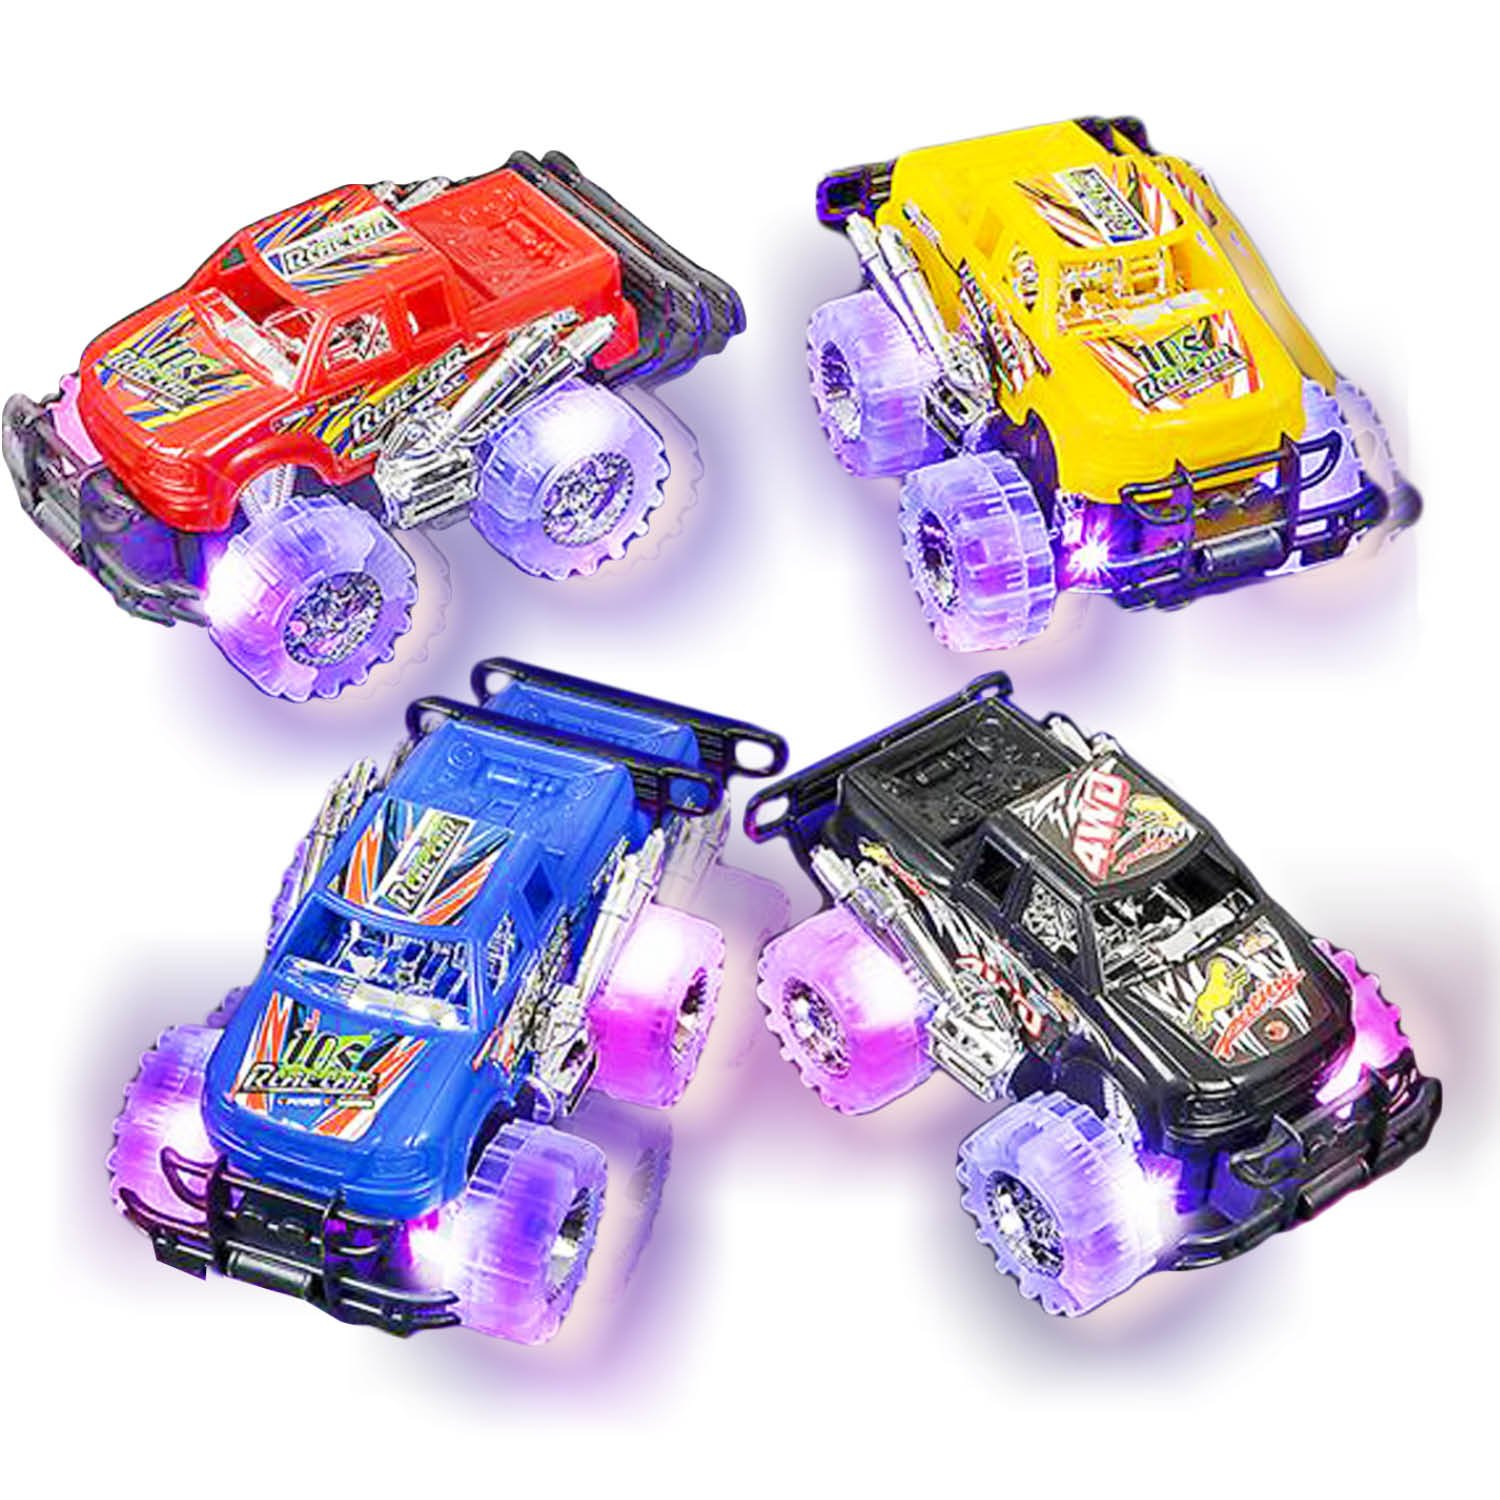 Light Up Monster Truck Set for Boys and Girls by ArtCreativity - Set Includes 2, 6 Inch Monster Trucks with Beautiful Flashing LED Tires - Push n Go Toy Cars Best Gift for Kids - for Ages 3+ by ArtCreativity